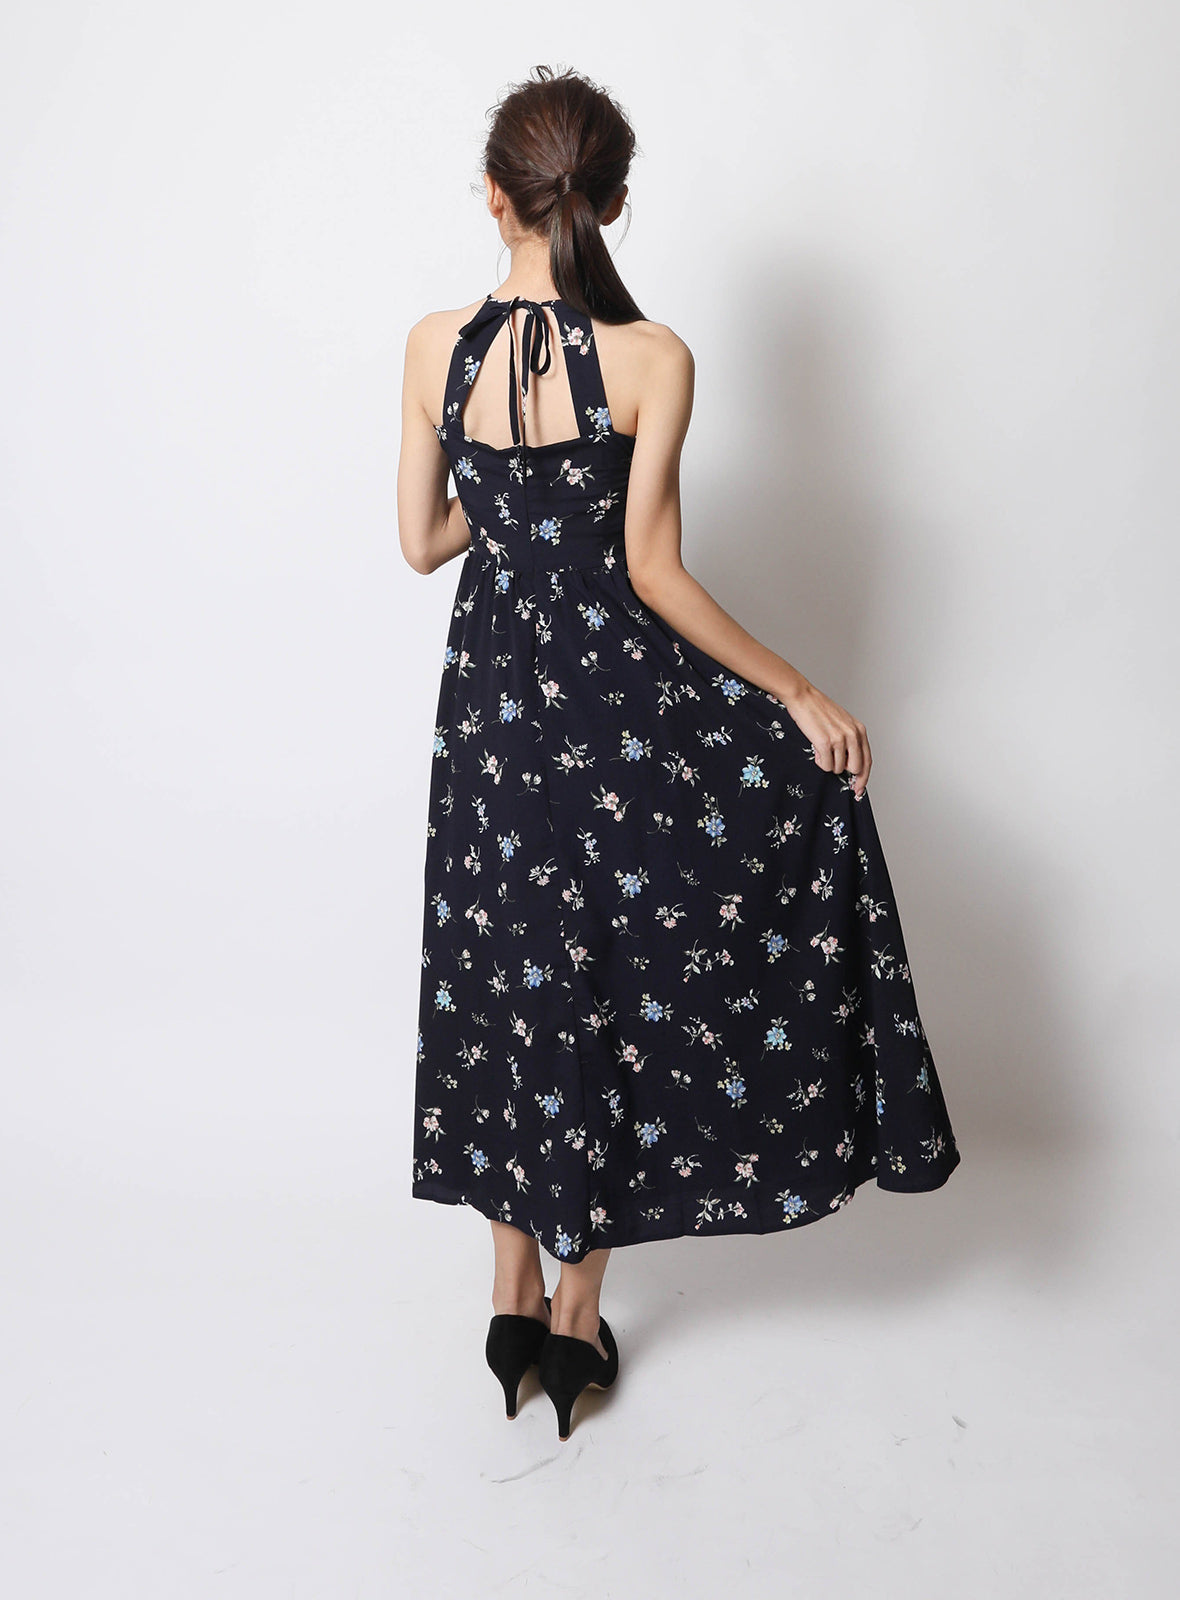 Ellie Maxi Dress in Navy